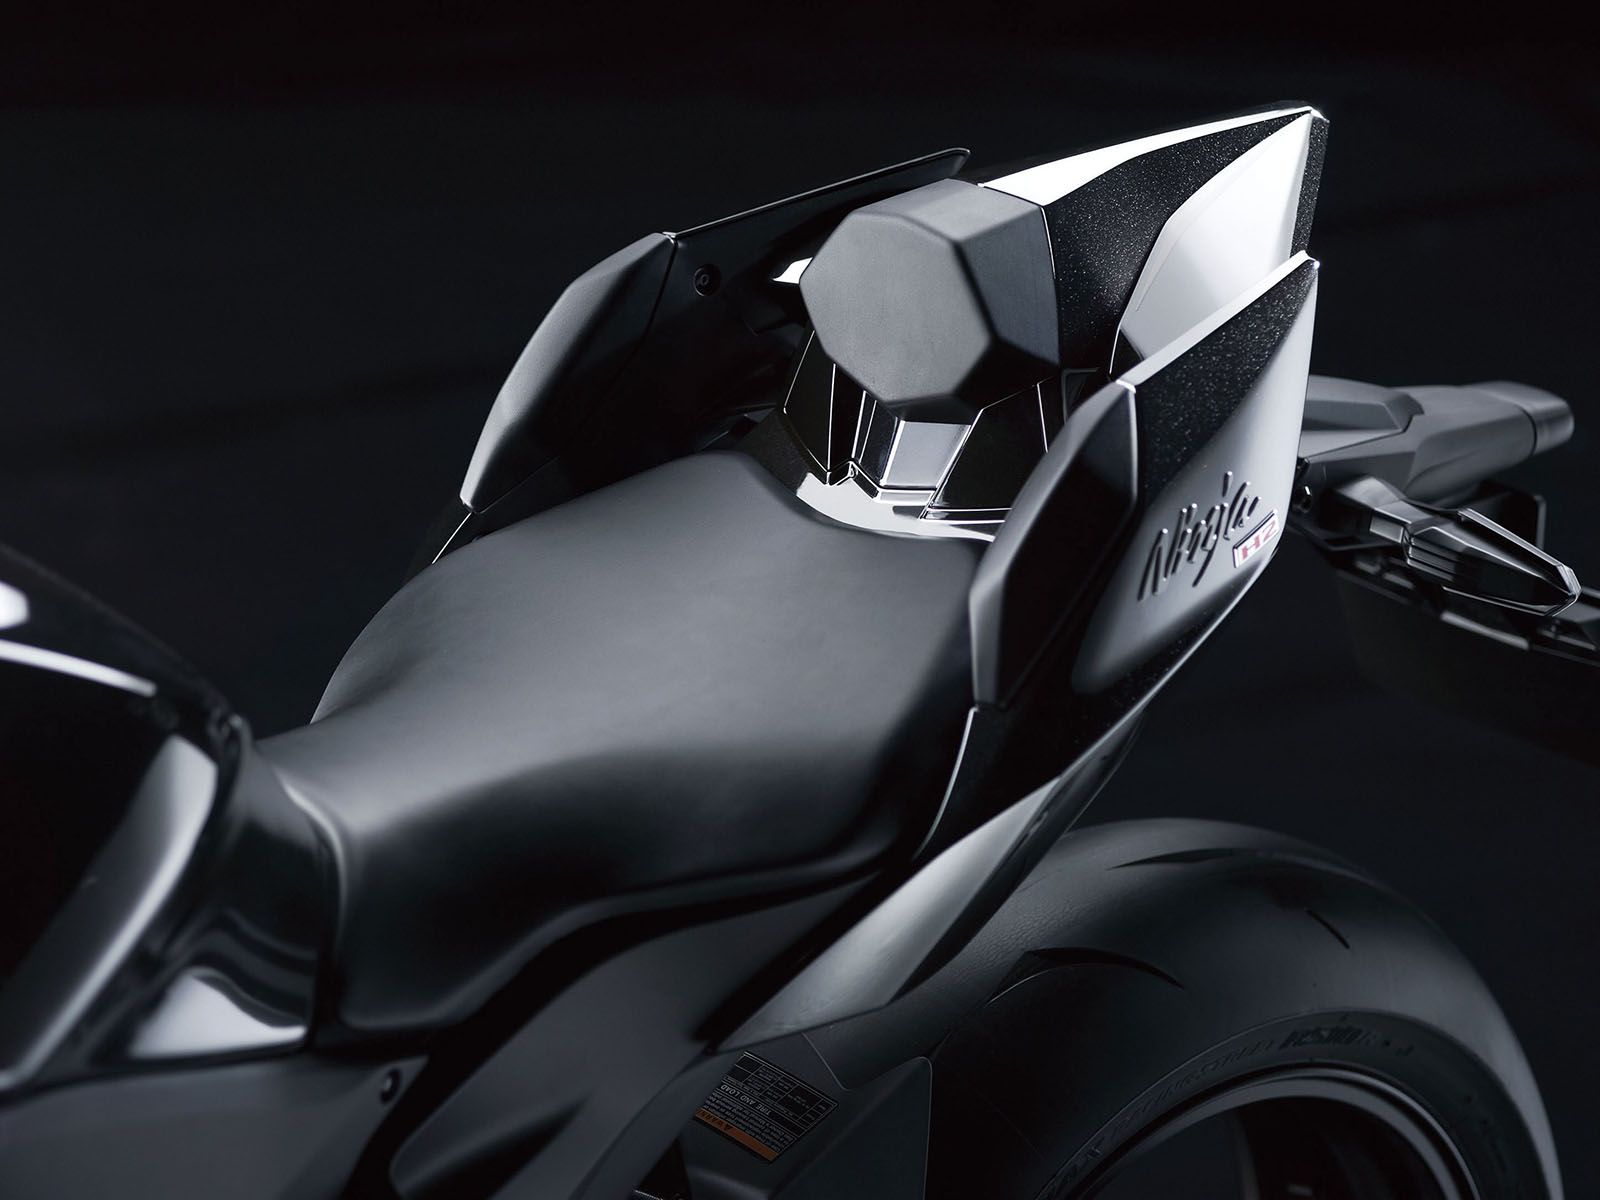 17_16ZX1000N_Seat